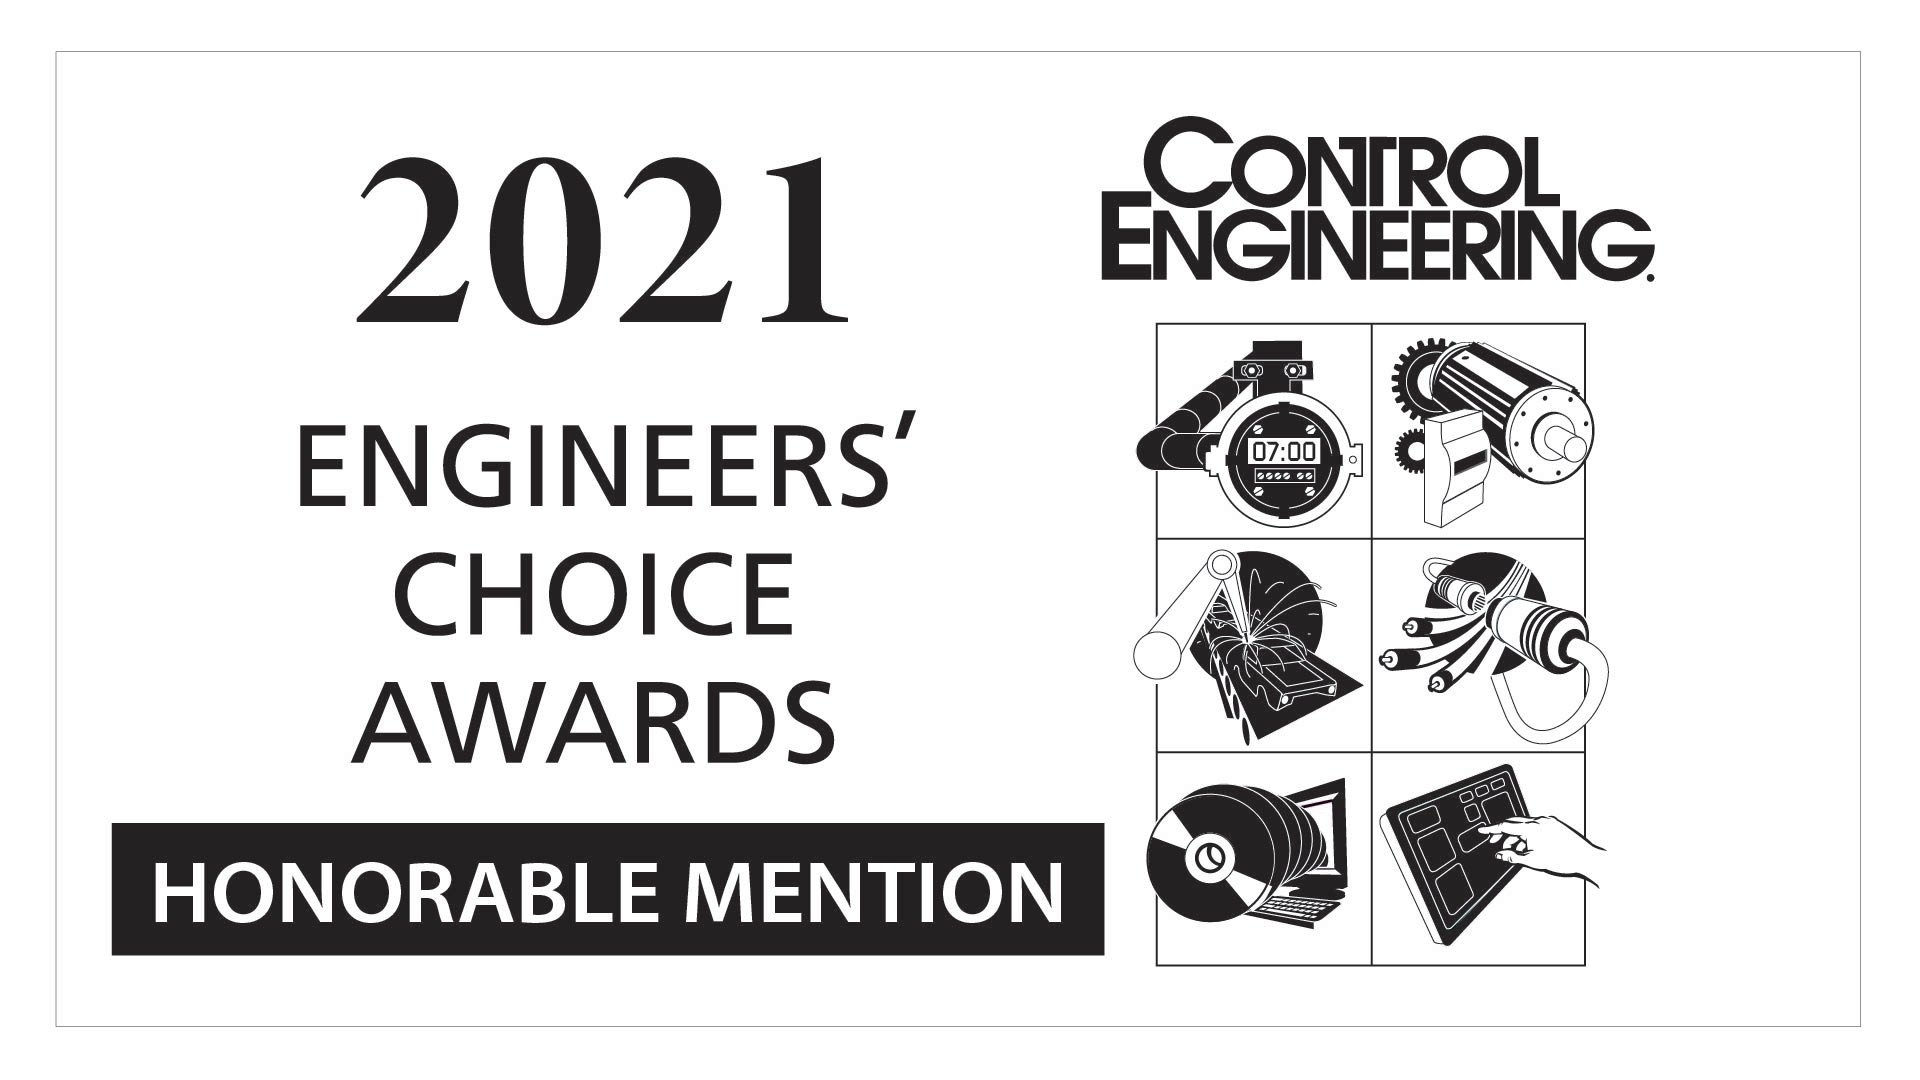 Logotipo de la Mención de honor del Control Engineering Engineers' Choice Award 2021